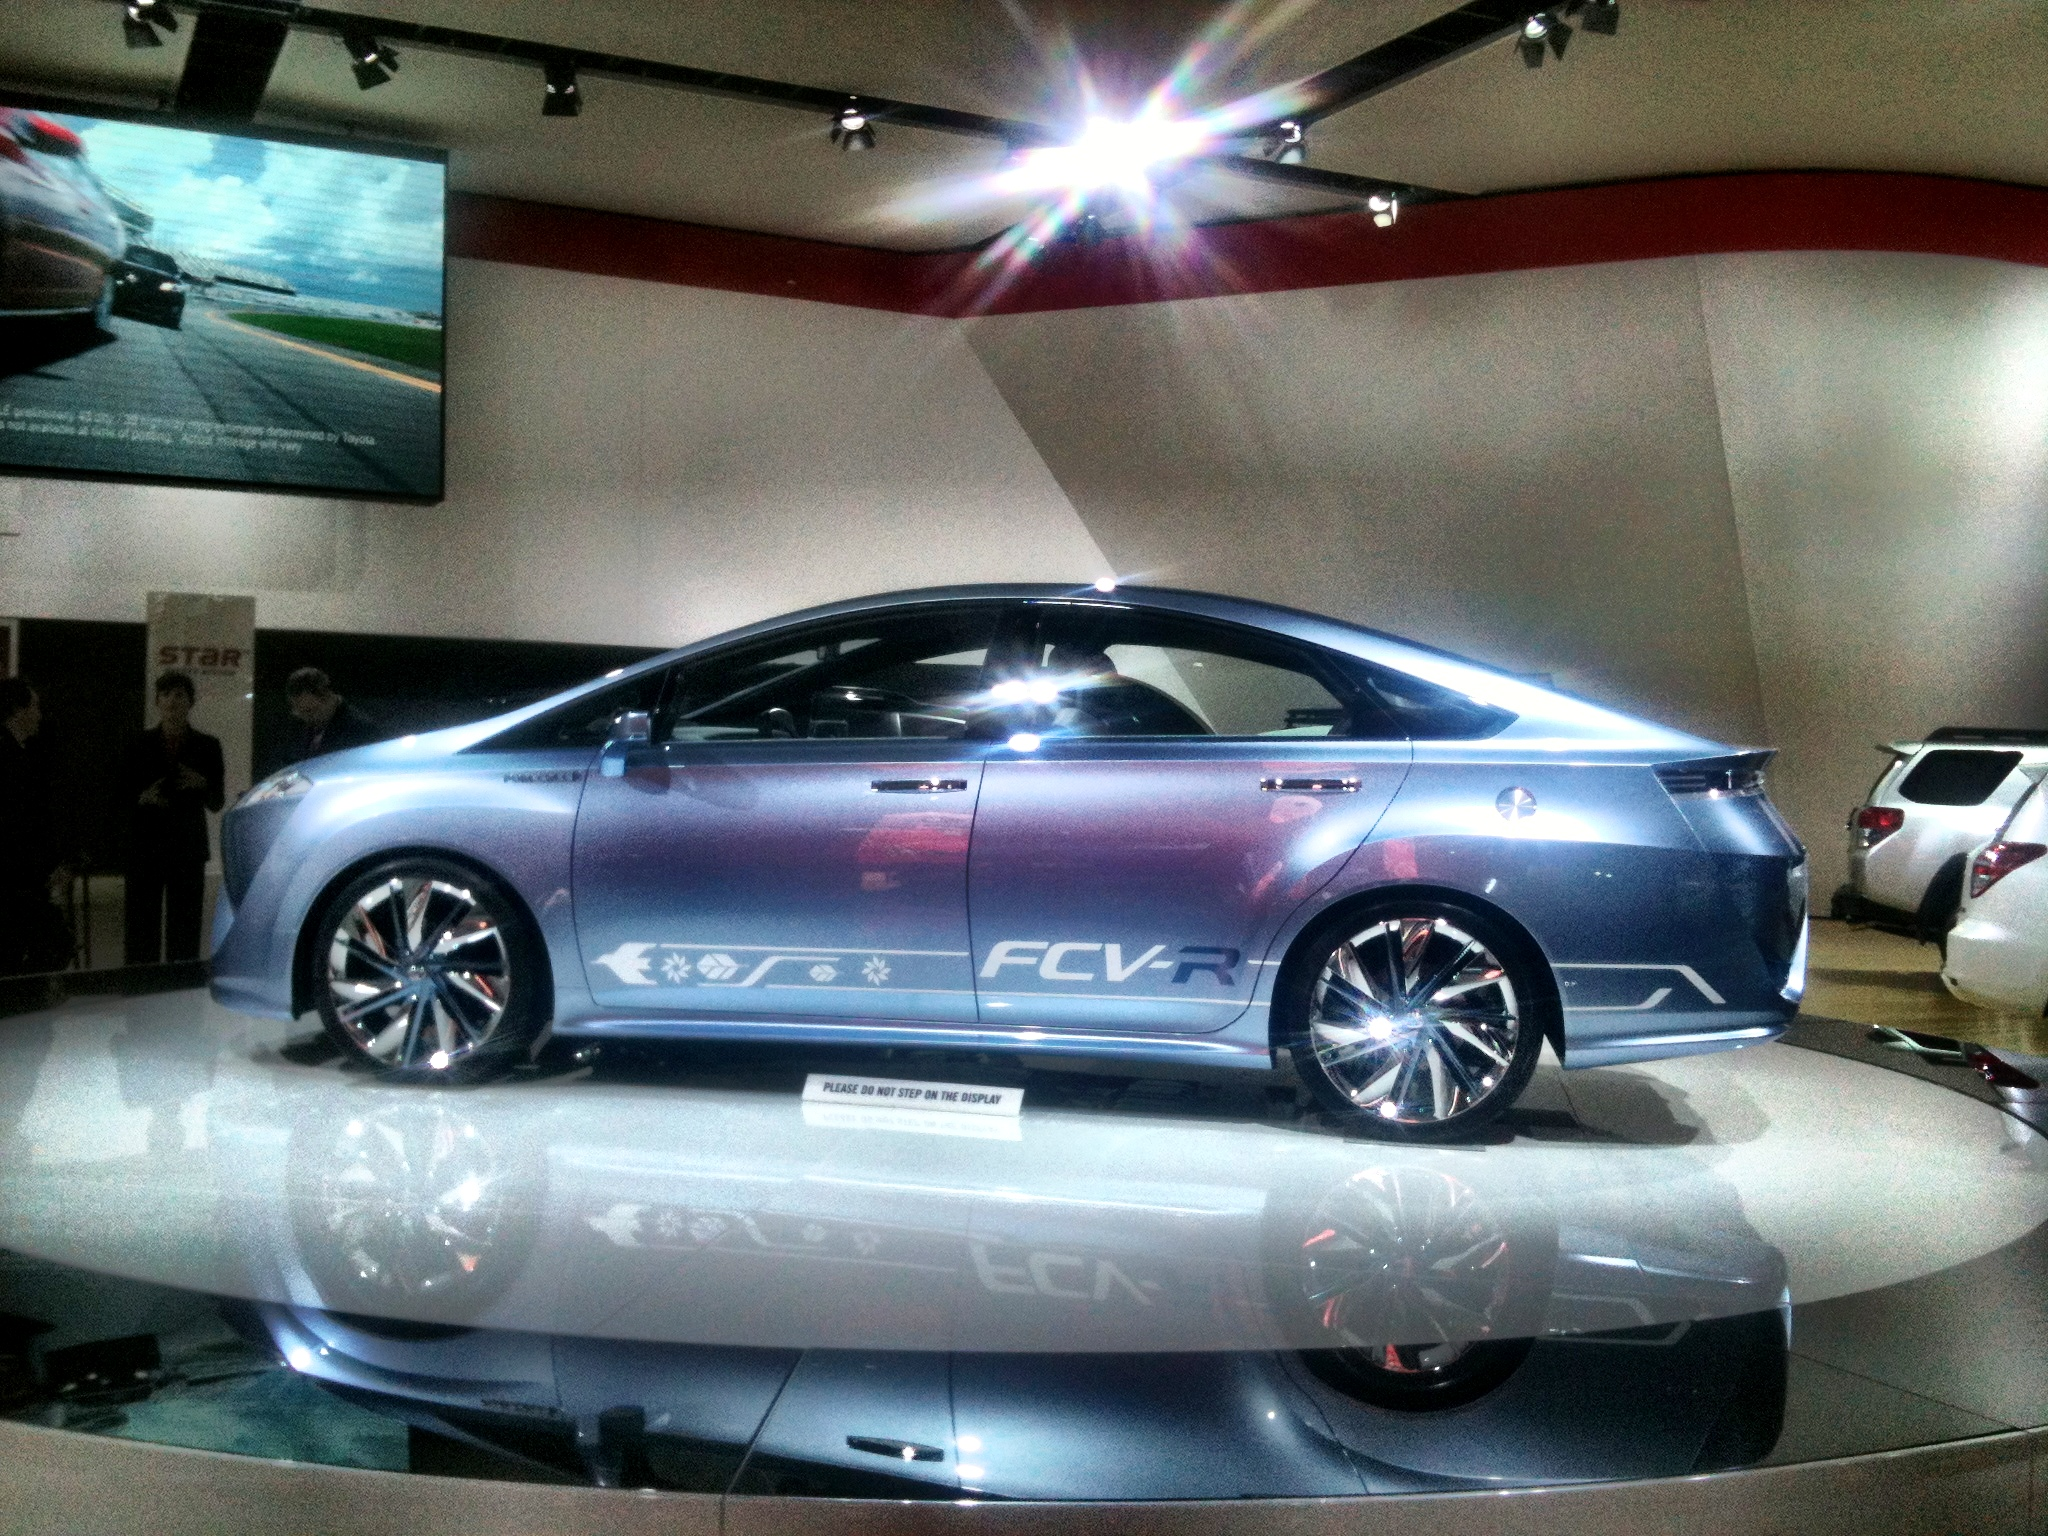 Toyota FCV-R Hydrogen Fuel Cell Concept Sedan Could Arrive in 2015